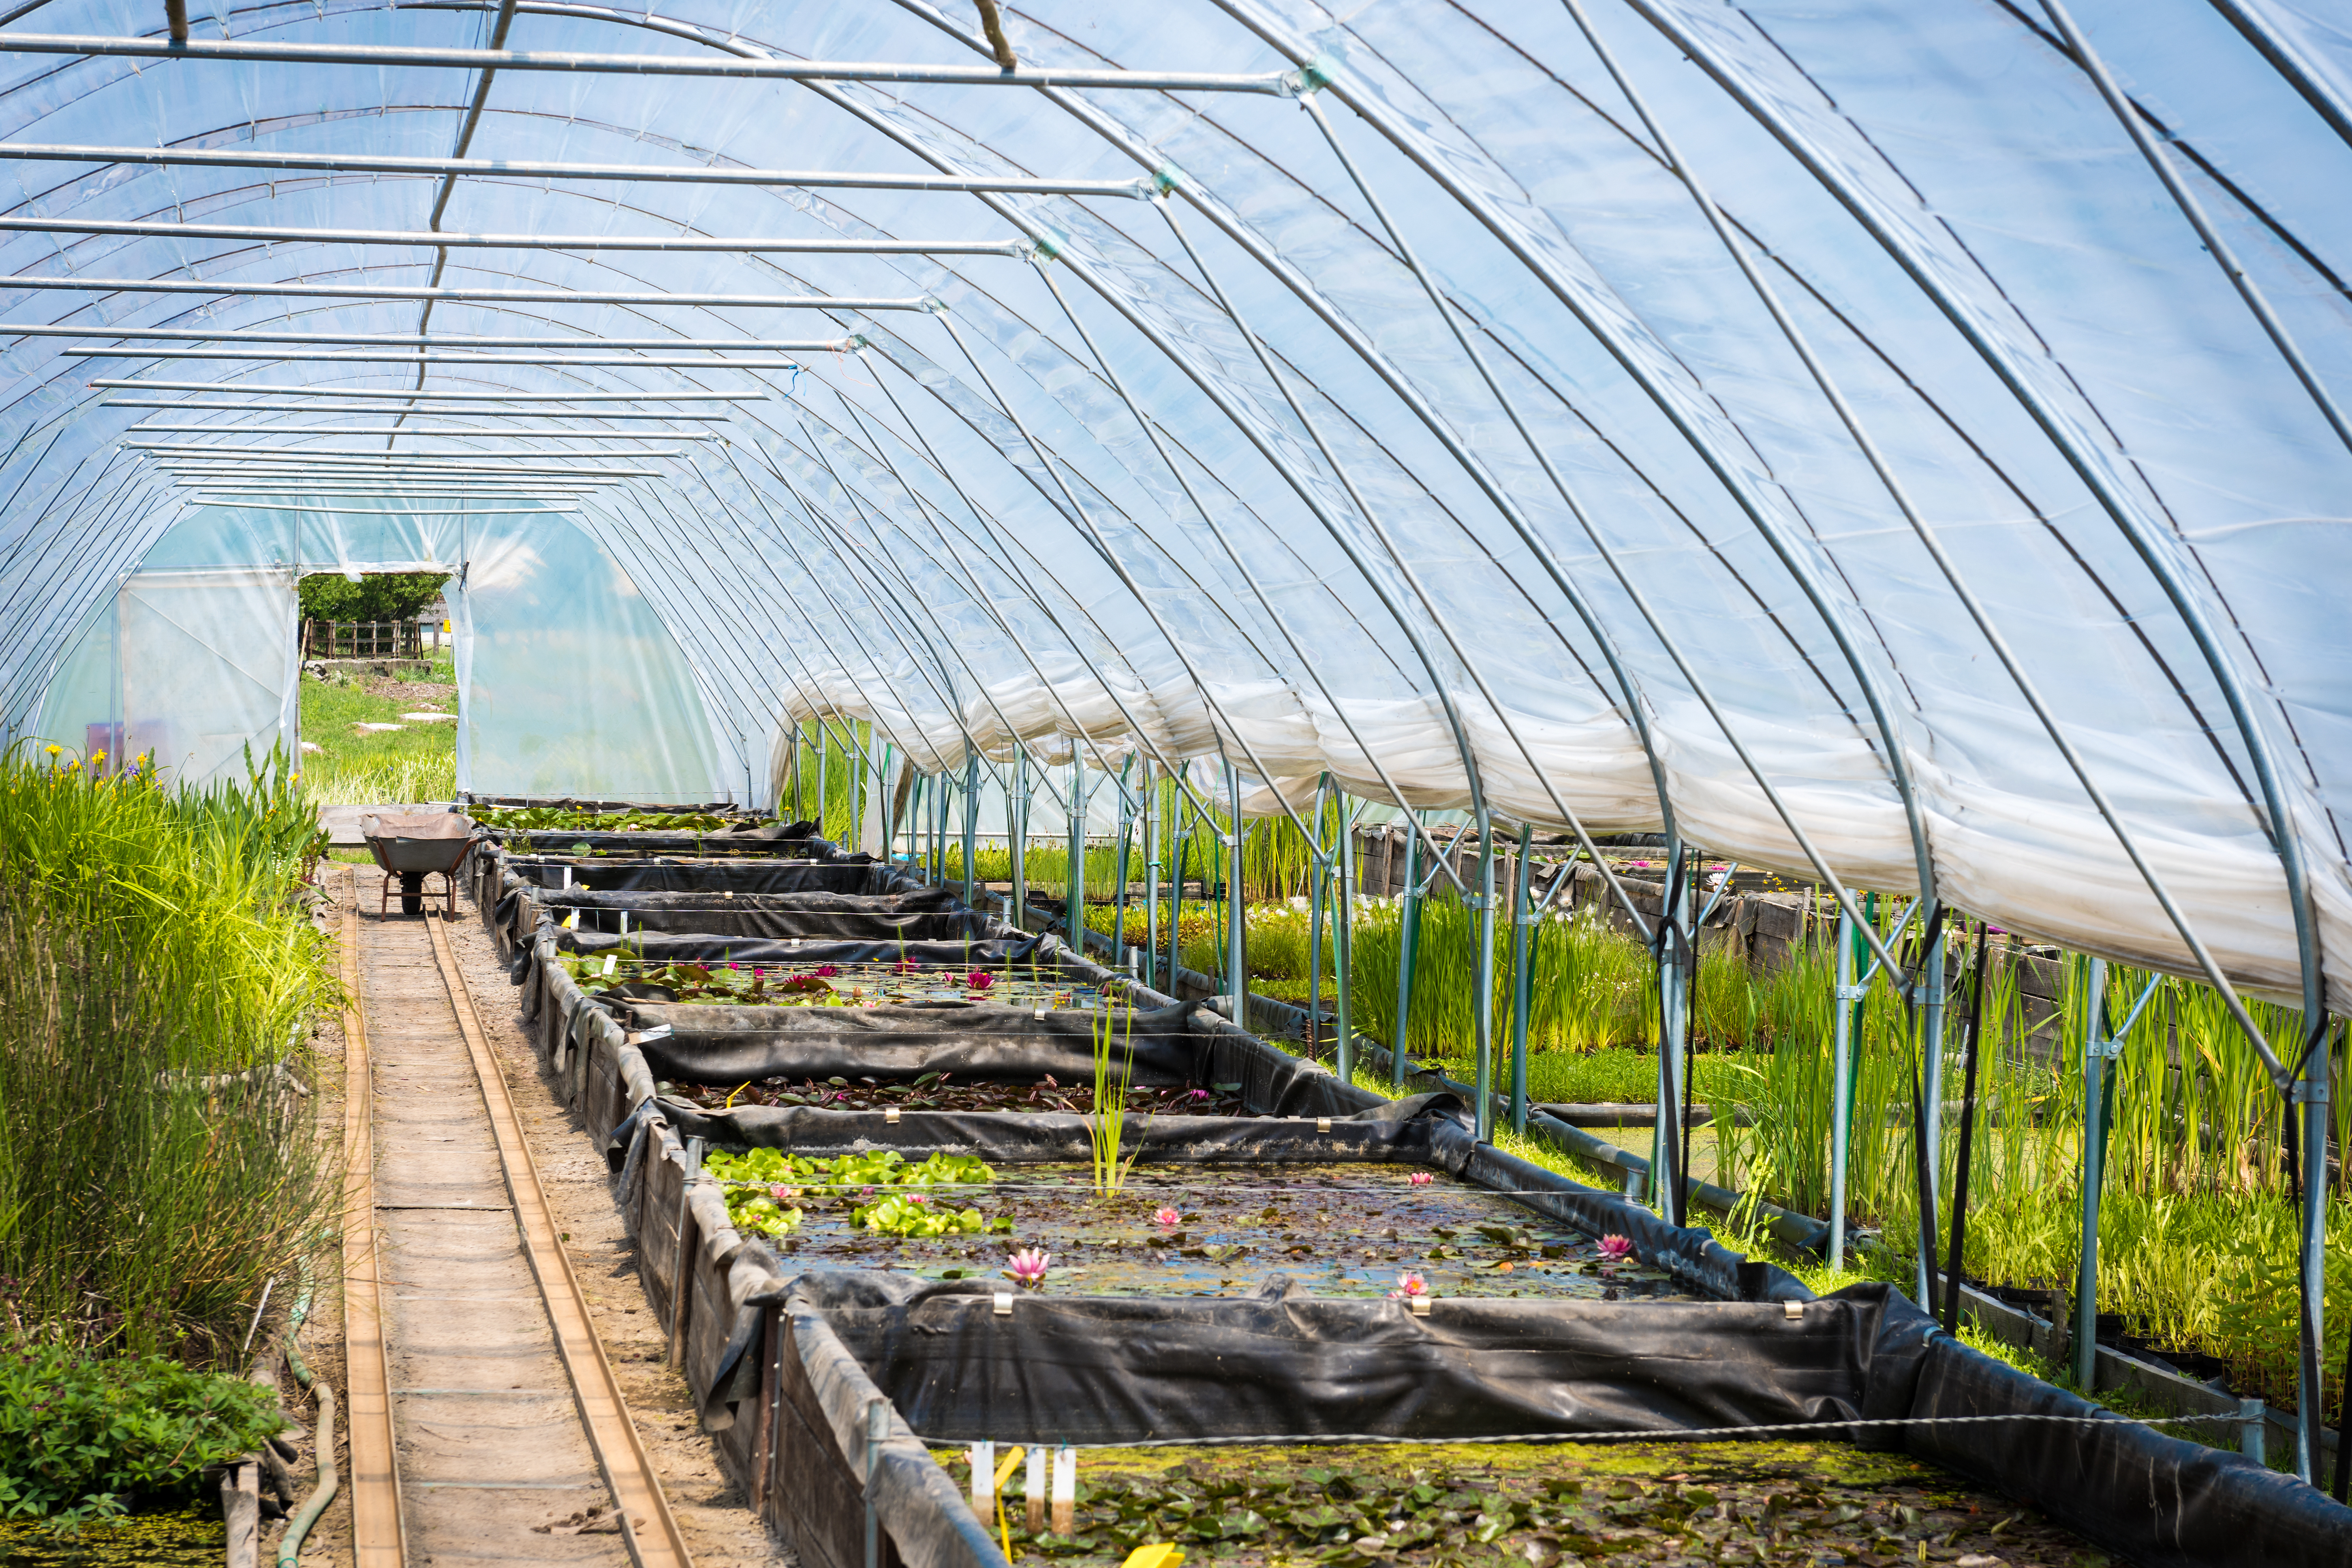 Help Us Build a New Greenhouse & Community Garden! - The